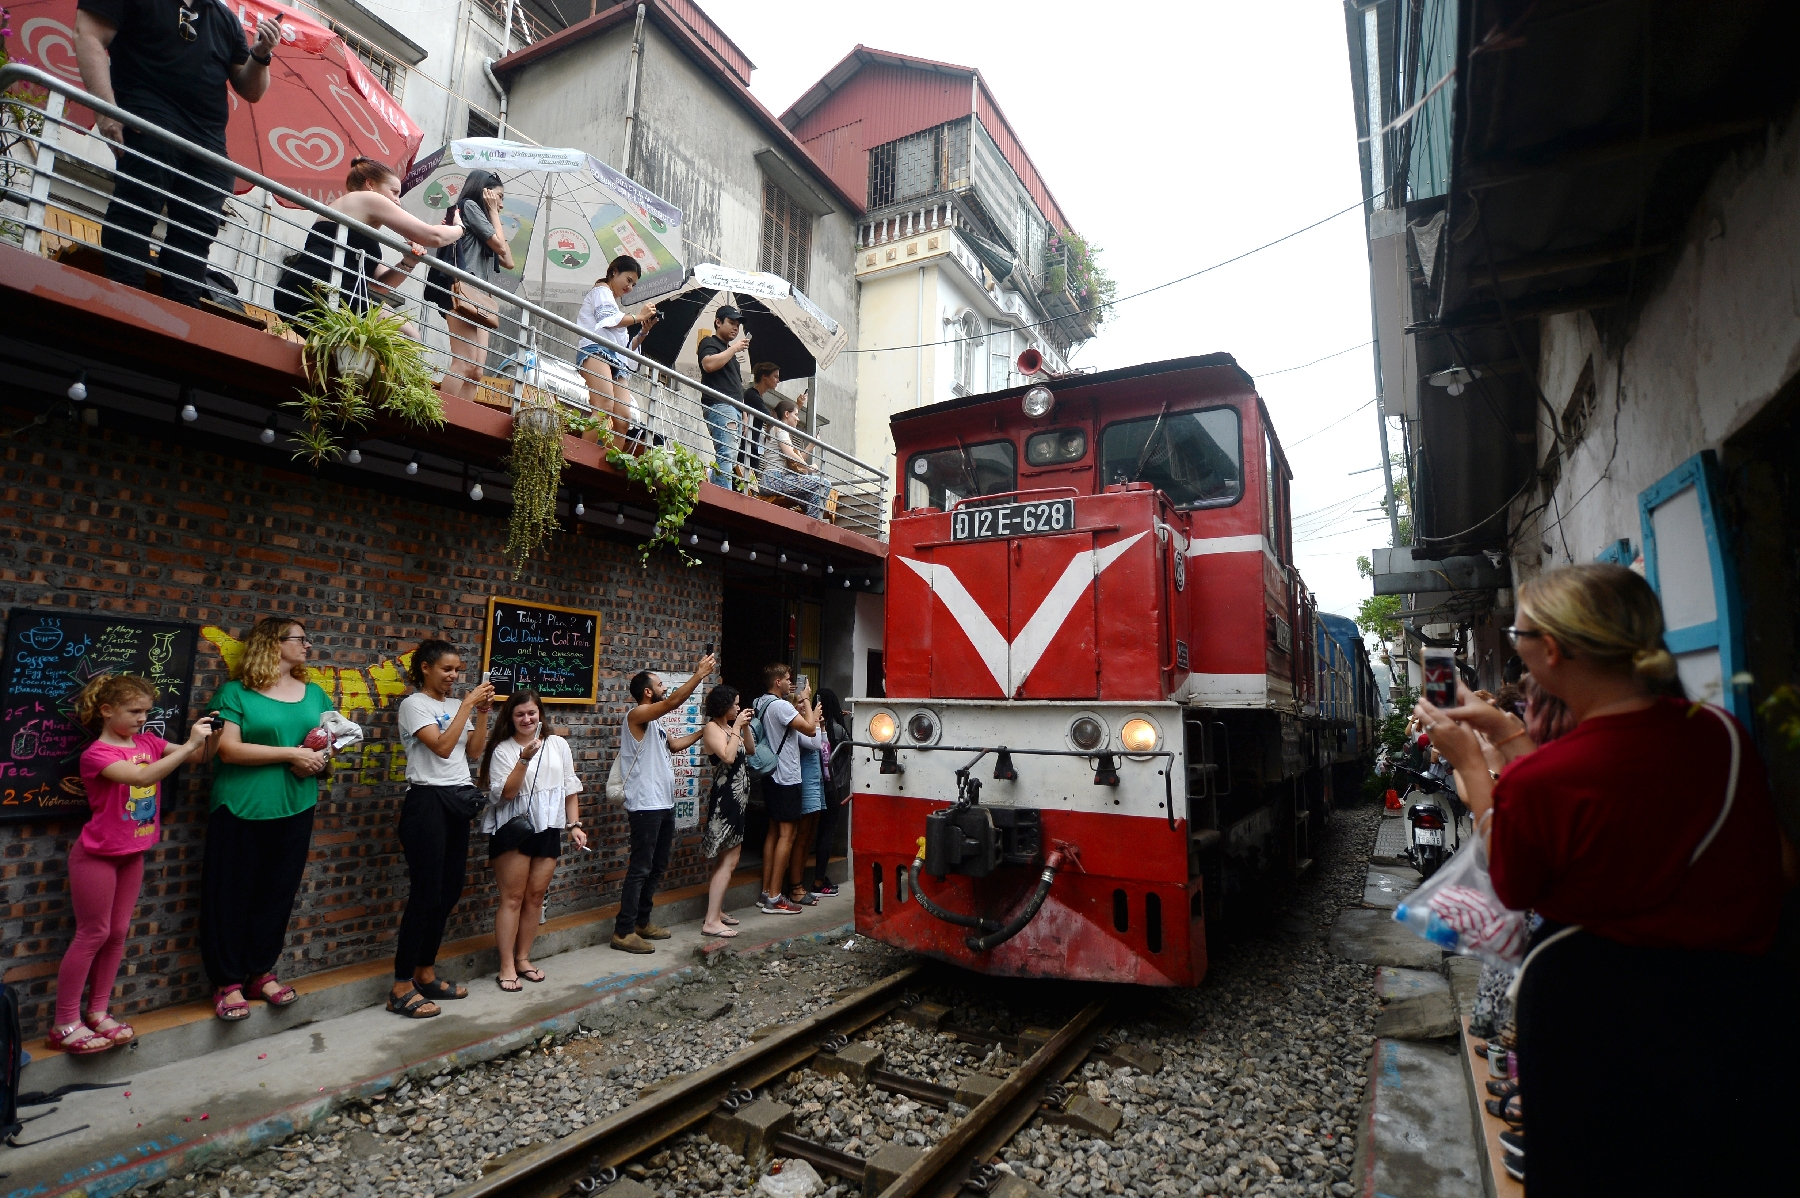 Tourists take pictures when a train goes through the railway in Hanoi's Old Quarter. Photo: AFP